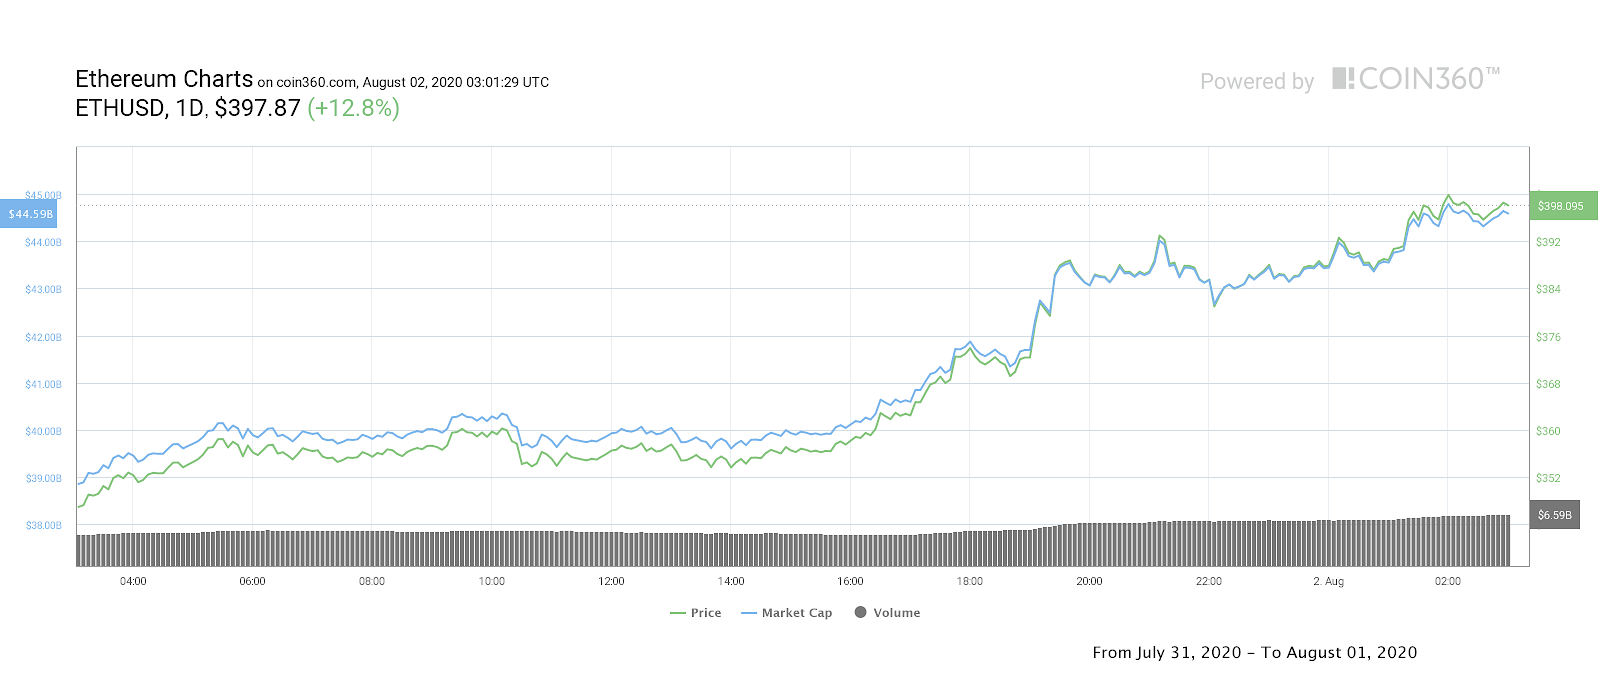 Ethereum daily price chart. Source: Coin360